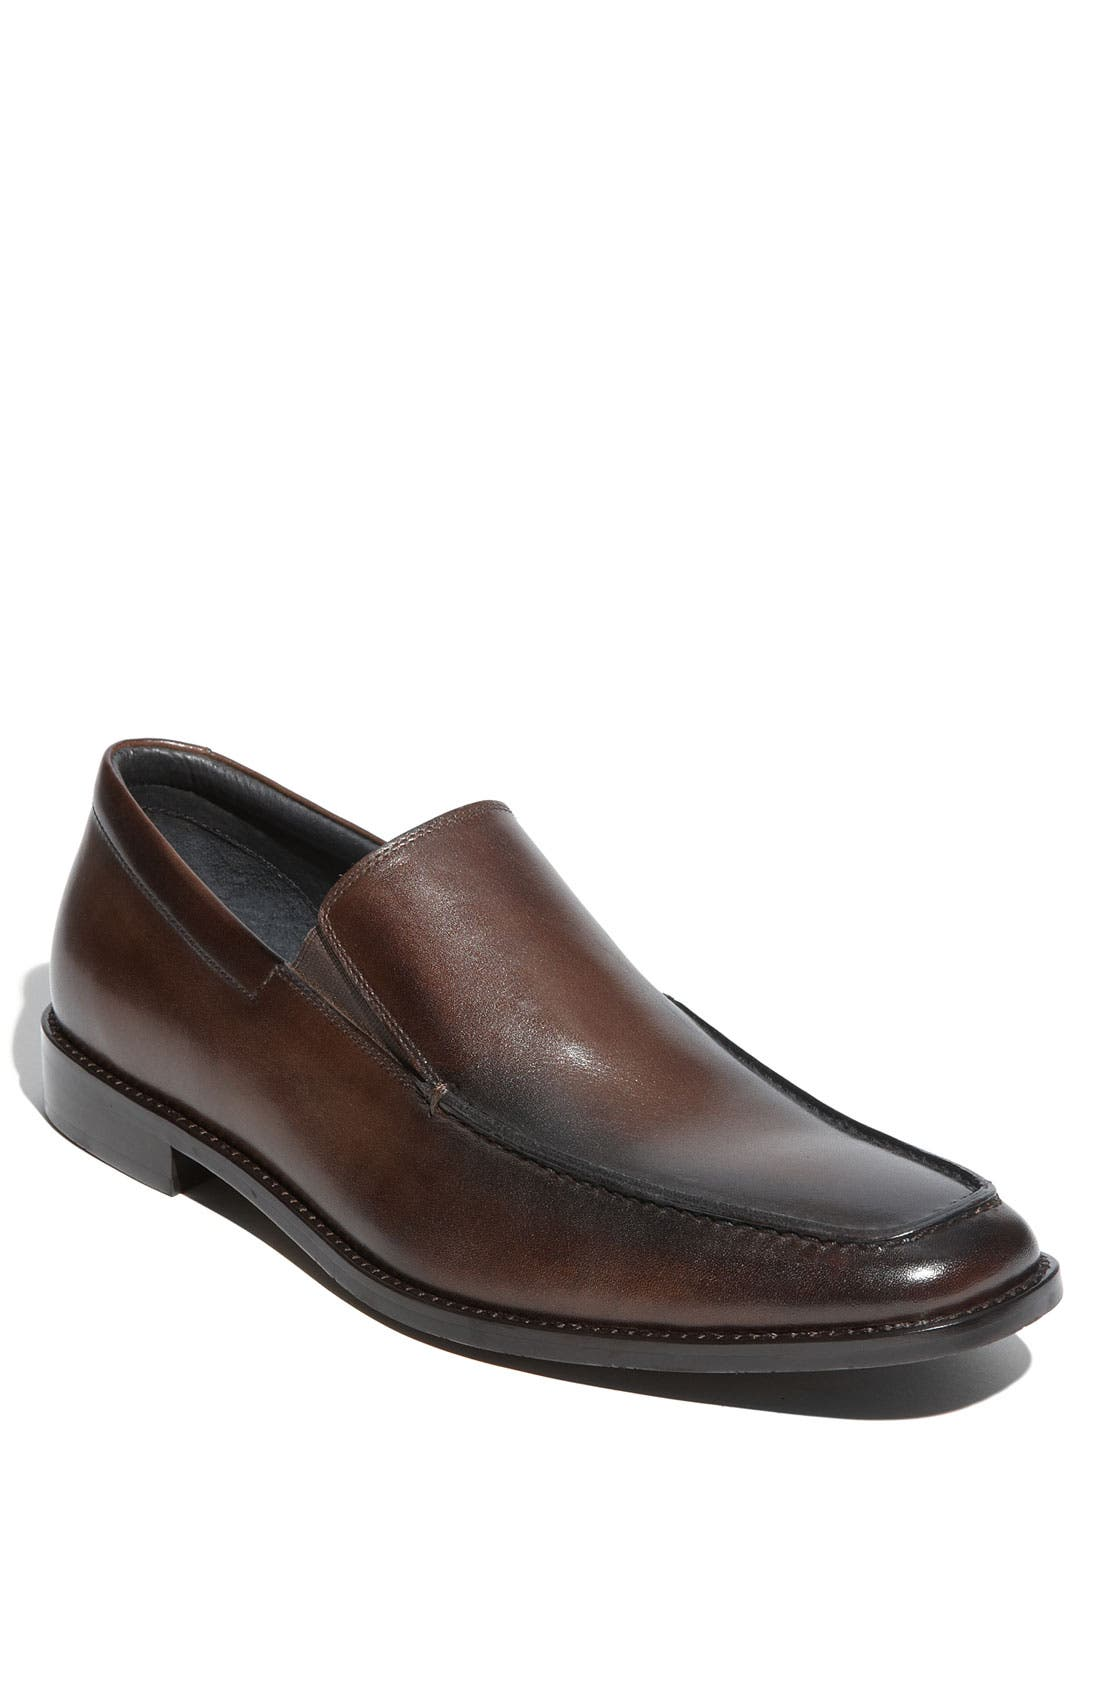 Alternate Image 1 Selected - Gordon Rush 'Madison' Venetian Loafer (Men)